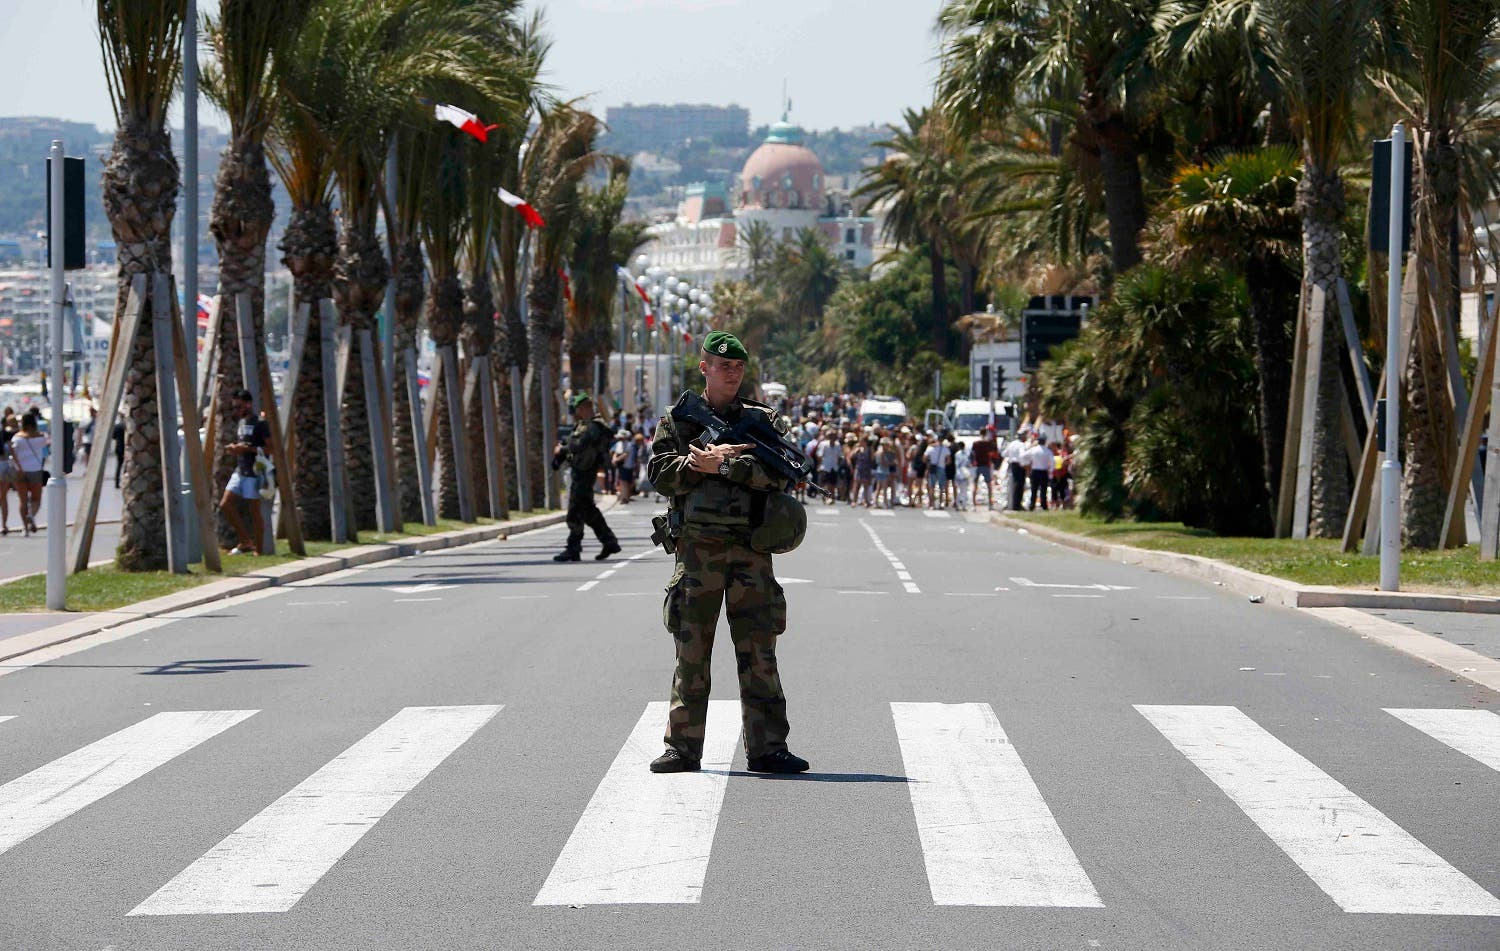 Soldiers from the French Foreign Legion patrol on the Promenade des Anglais on the third day of national mourning to pay tribute to victims of the truck attack on Bastille Day that killed scores and injured as many in Nice. (File photo: Reuters)